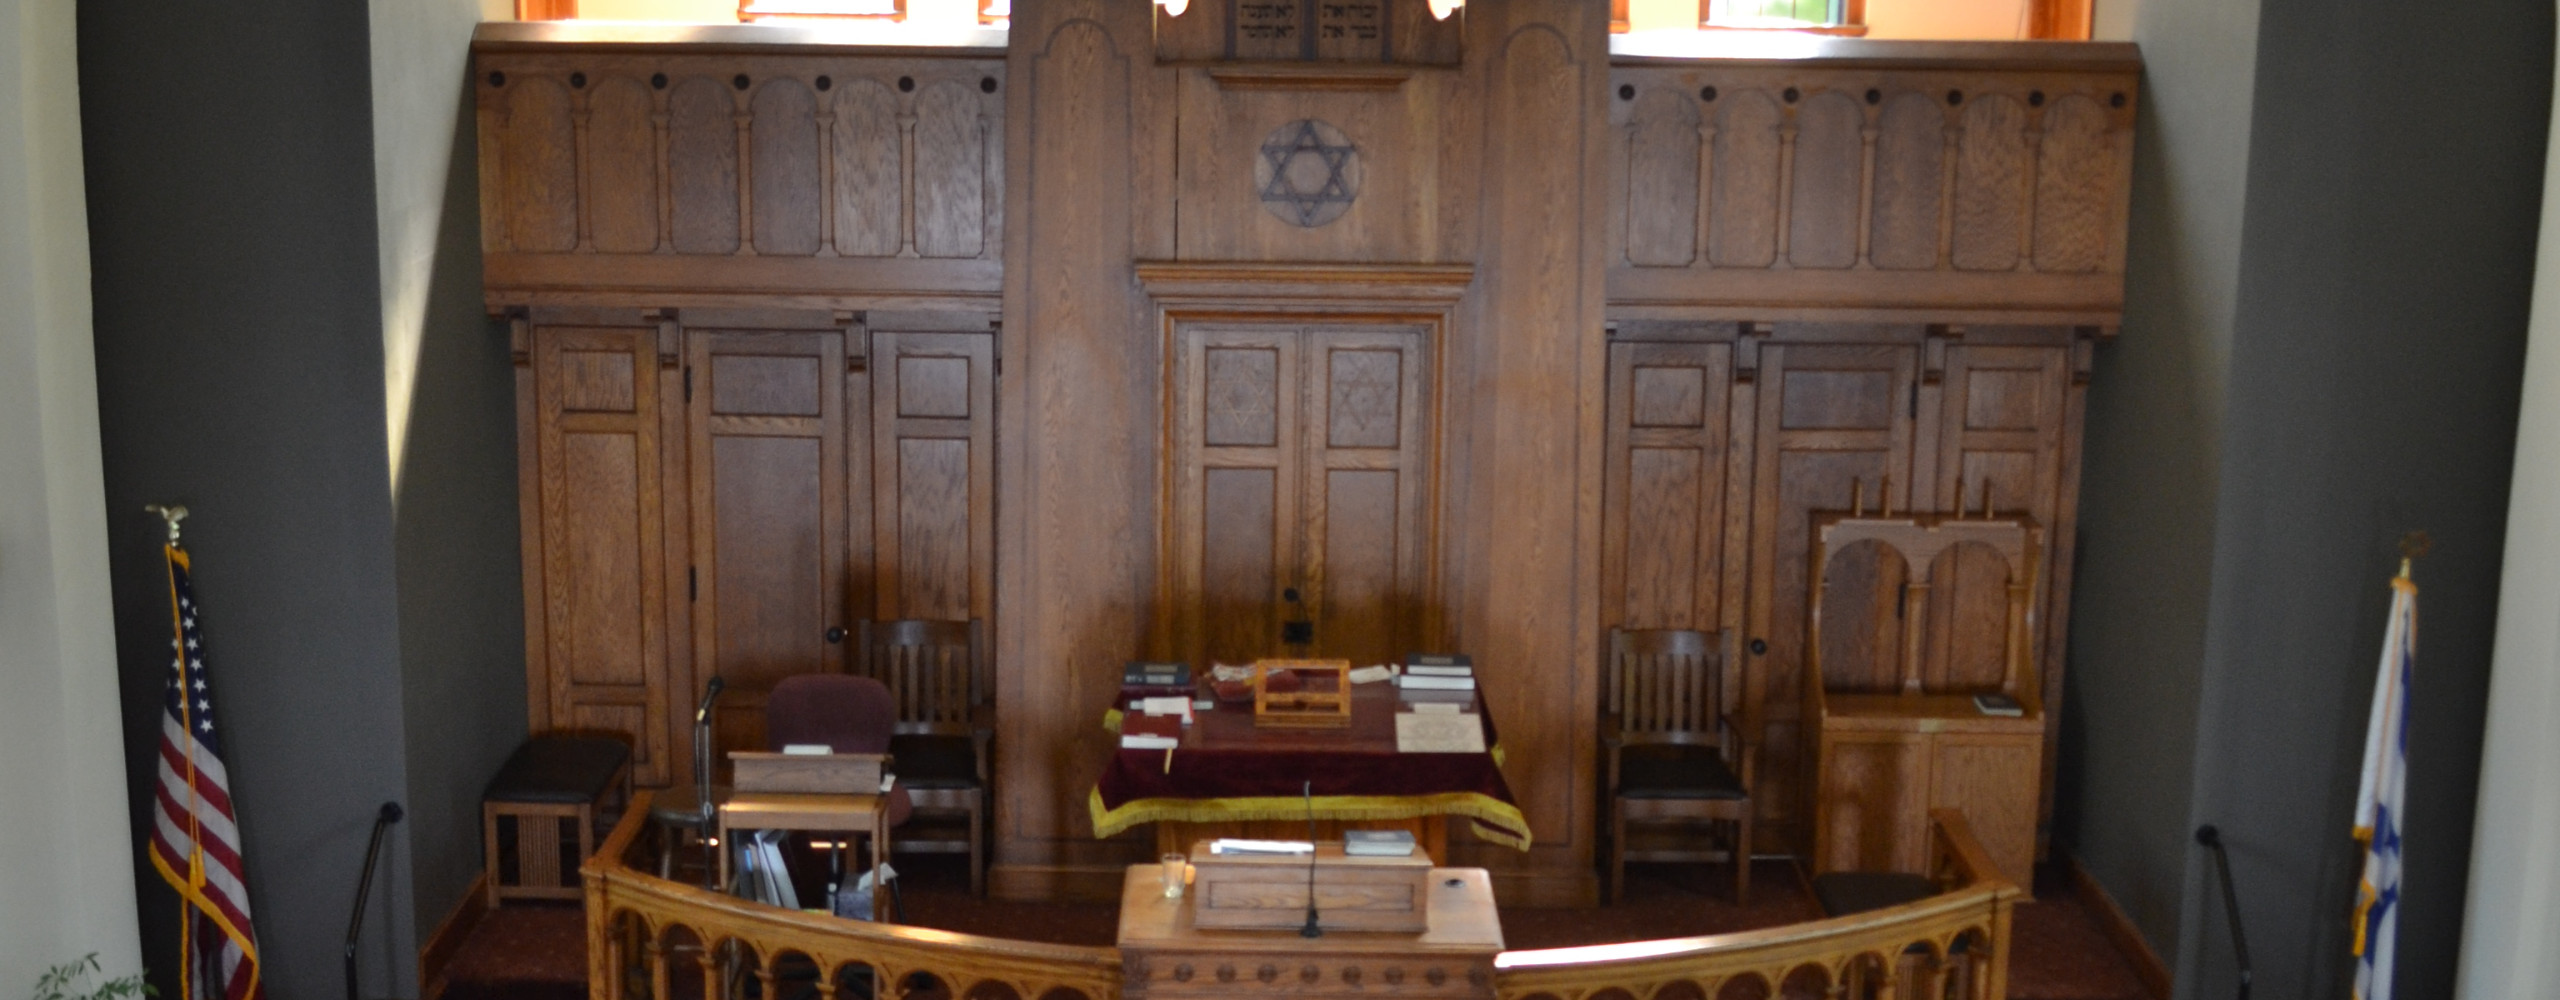 "<a href=""https://www.tbeithaca.org/history.html""